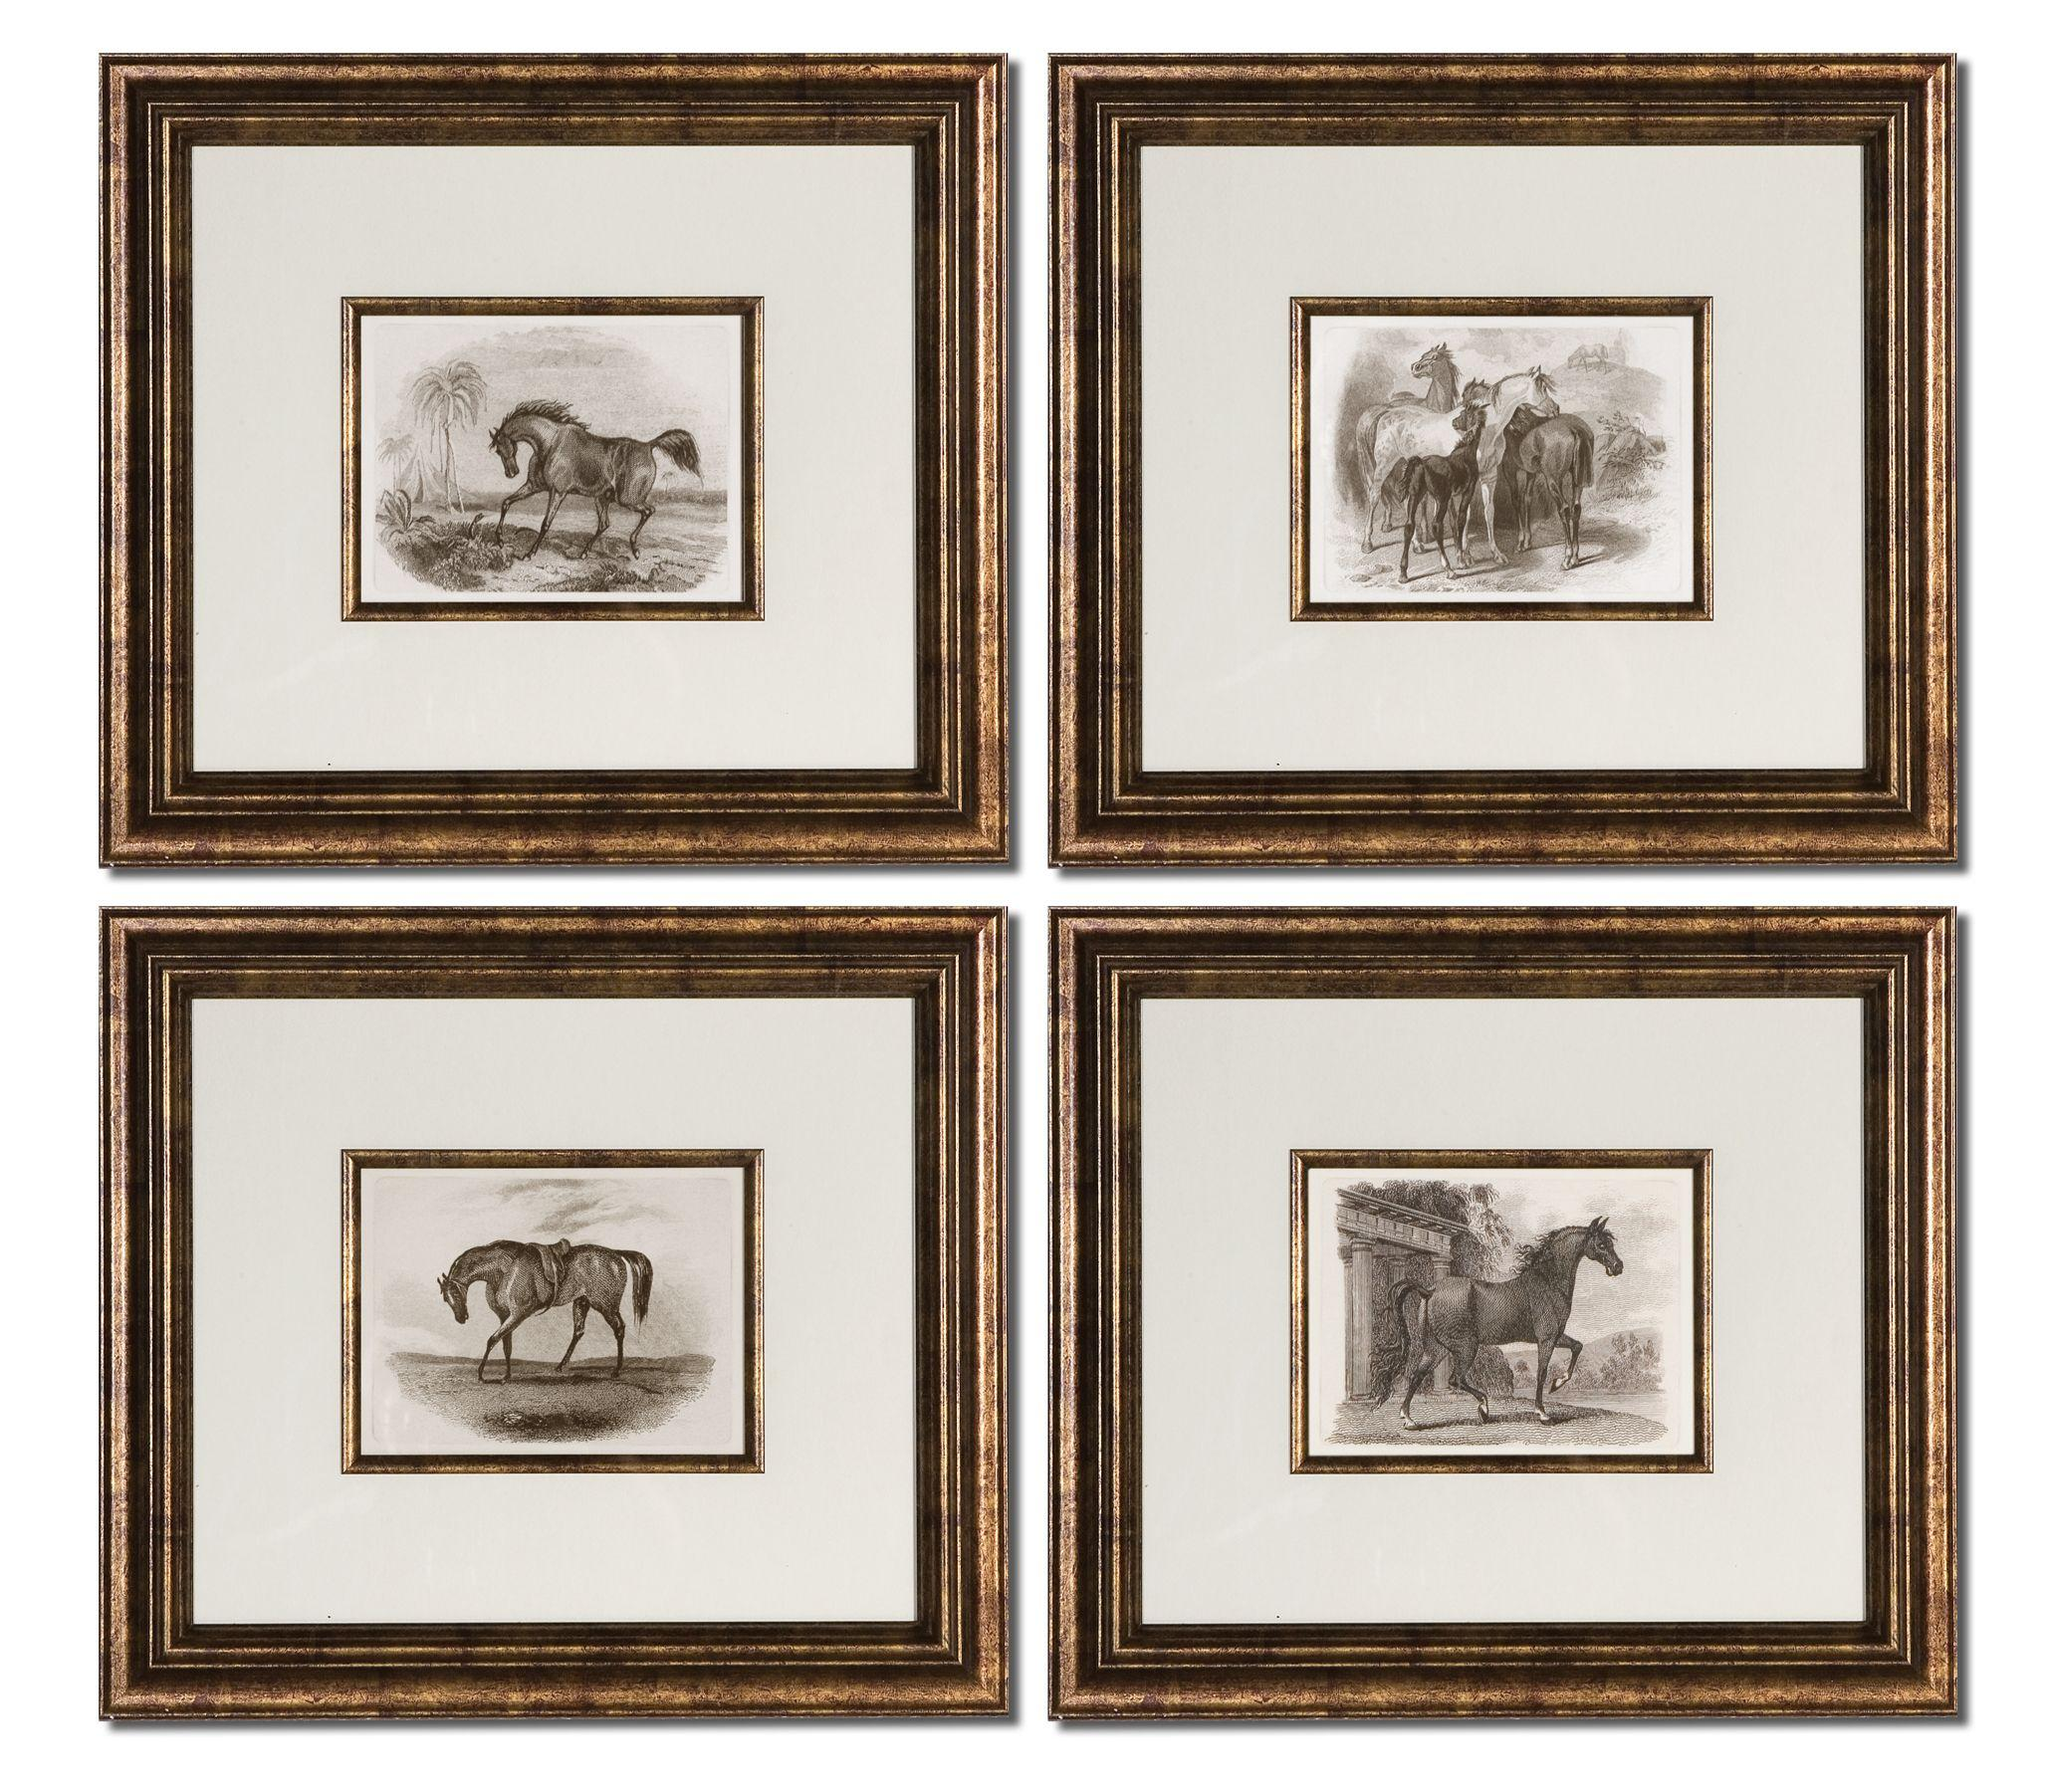 Uttermost Art Horses Set of 4 - Item Number: 33590